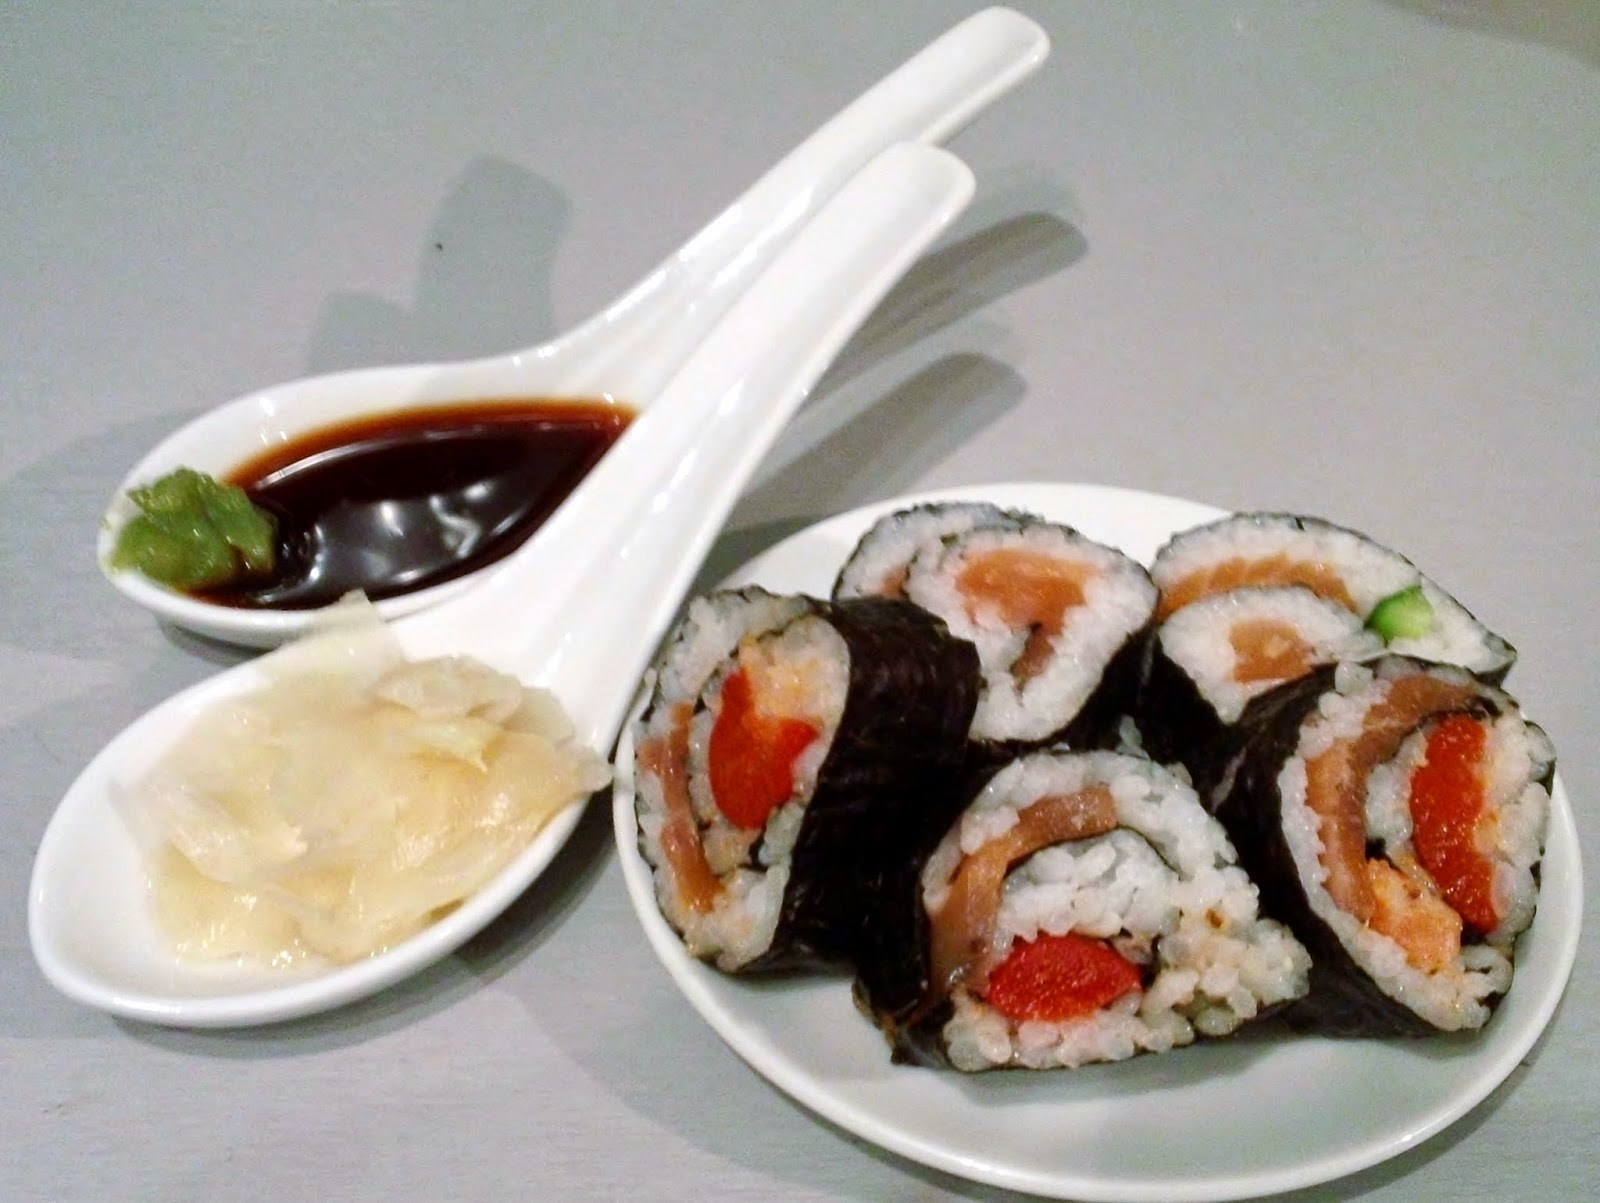 Homemade Sushi using Yutaka Sushi Kit, Homemade Sushi, Japanese Food